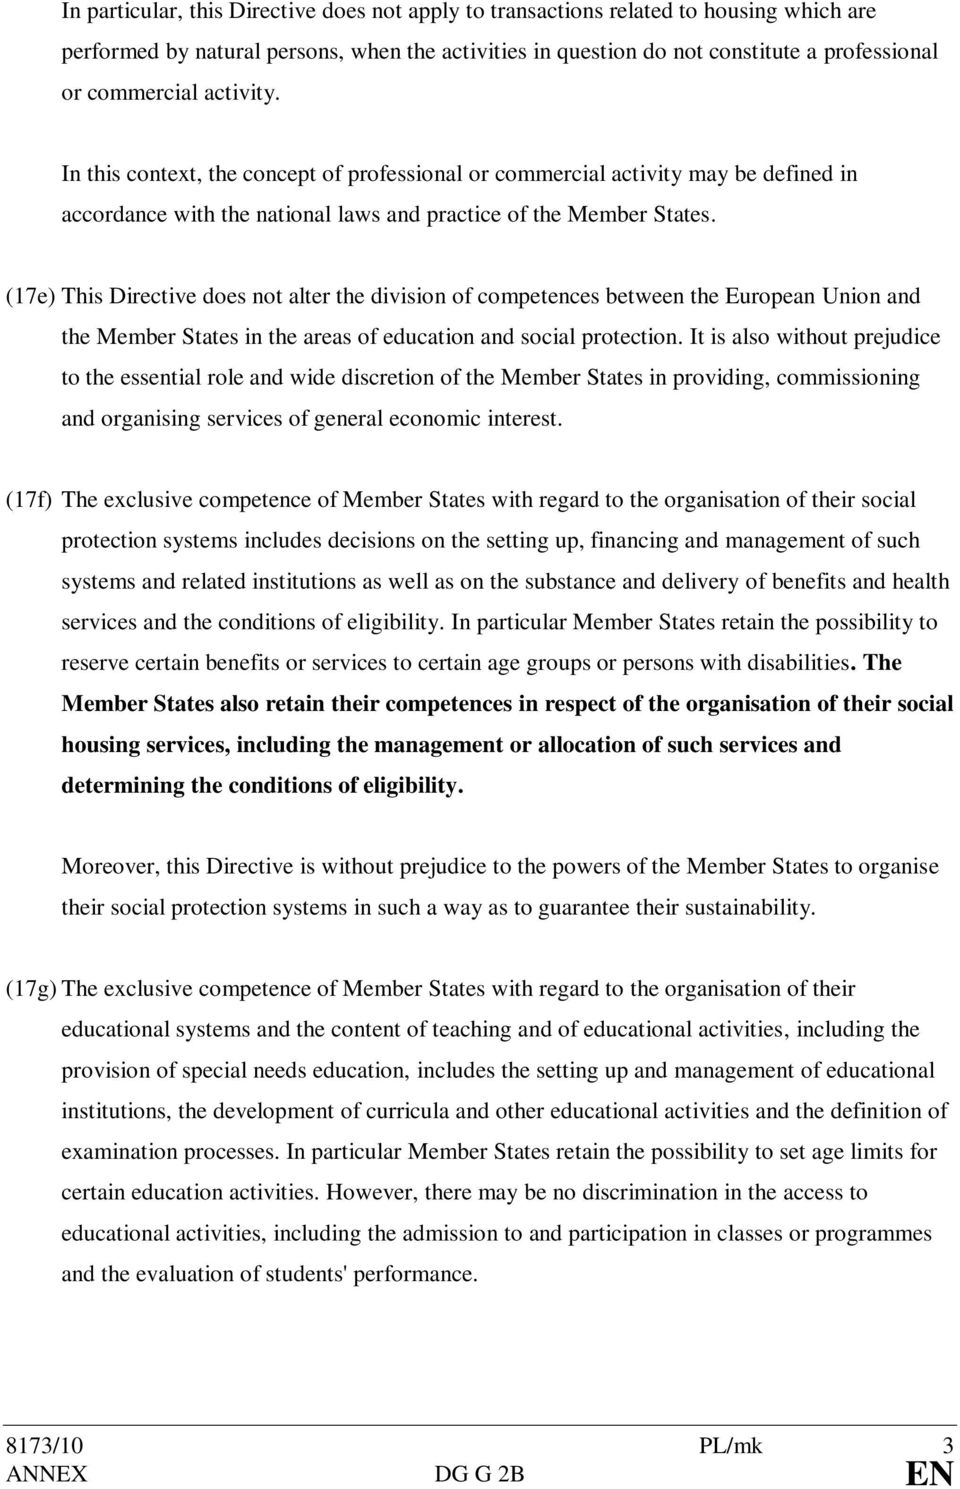 (17e) This Directive does not alter the division of competences between the European Union and the Member States in the areas of education and social protection.